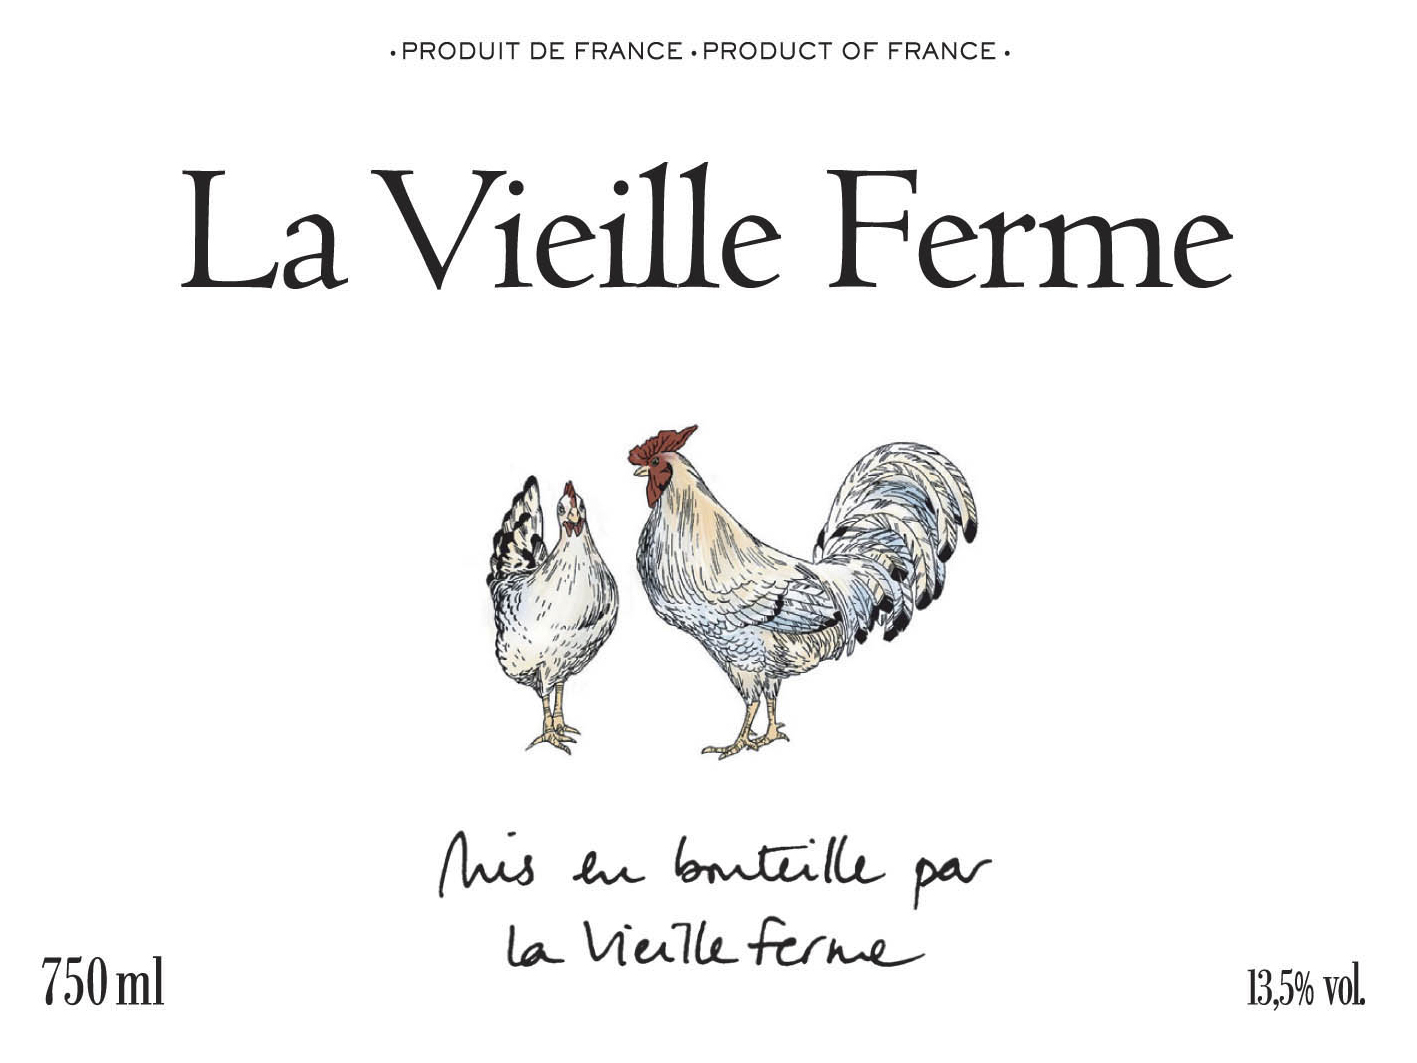 The Times-Picayune: Raise a toast to spring: 2 easy-drinking (and affordable) wines for porch sipping (ft. La Vieille Ferme) | 03/02/18